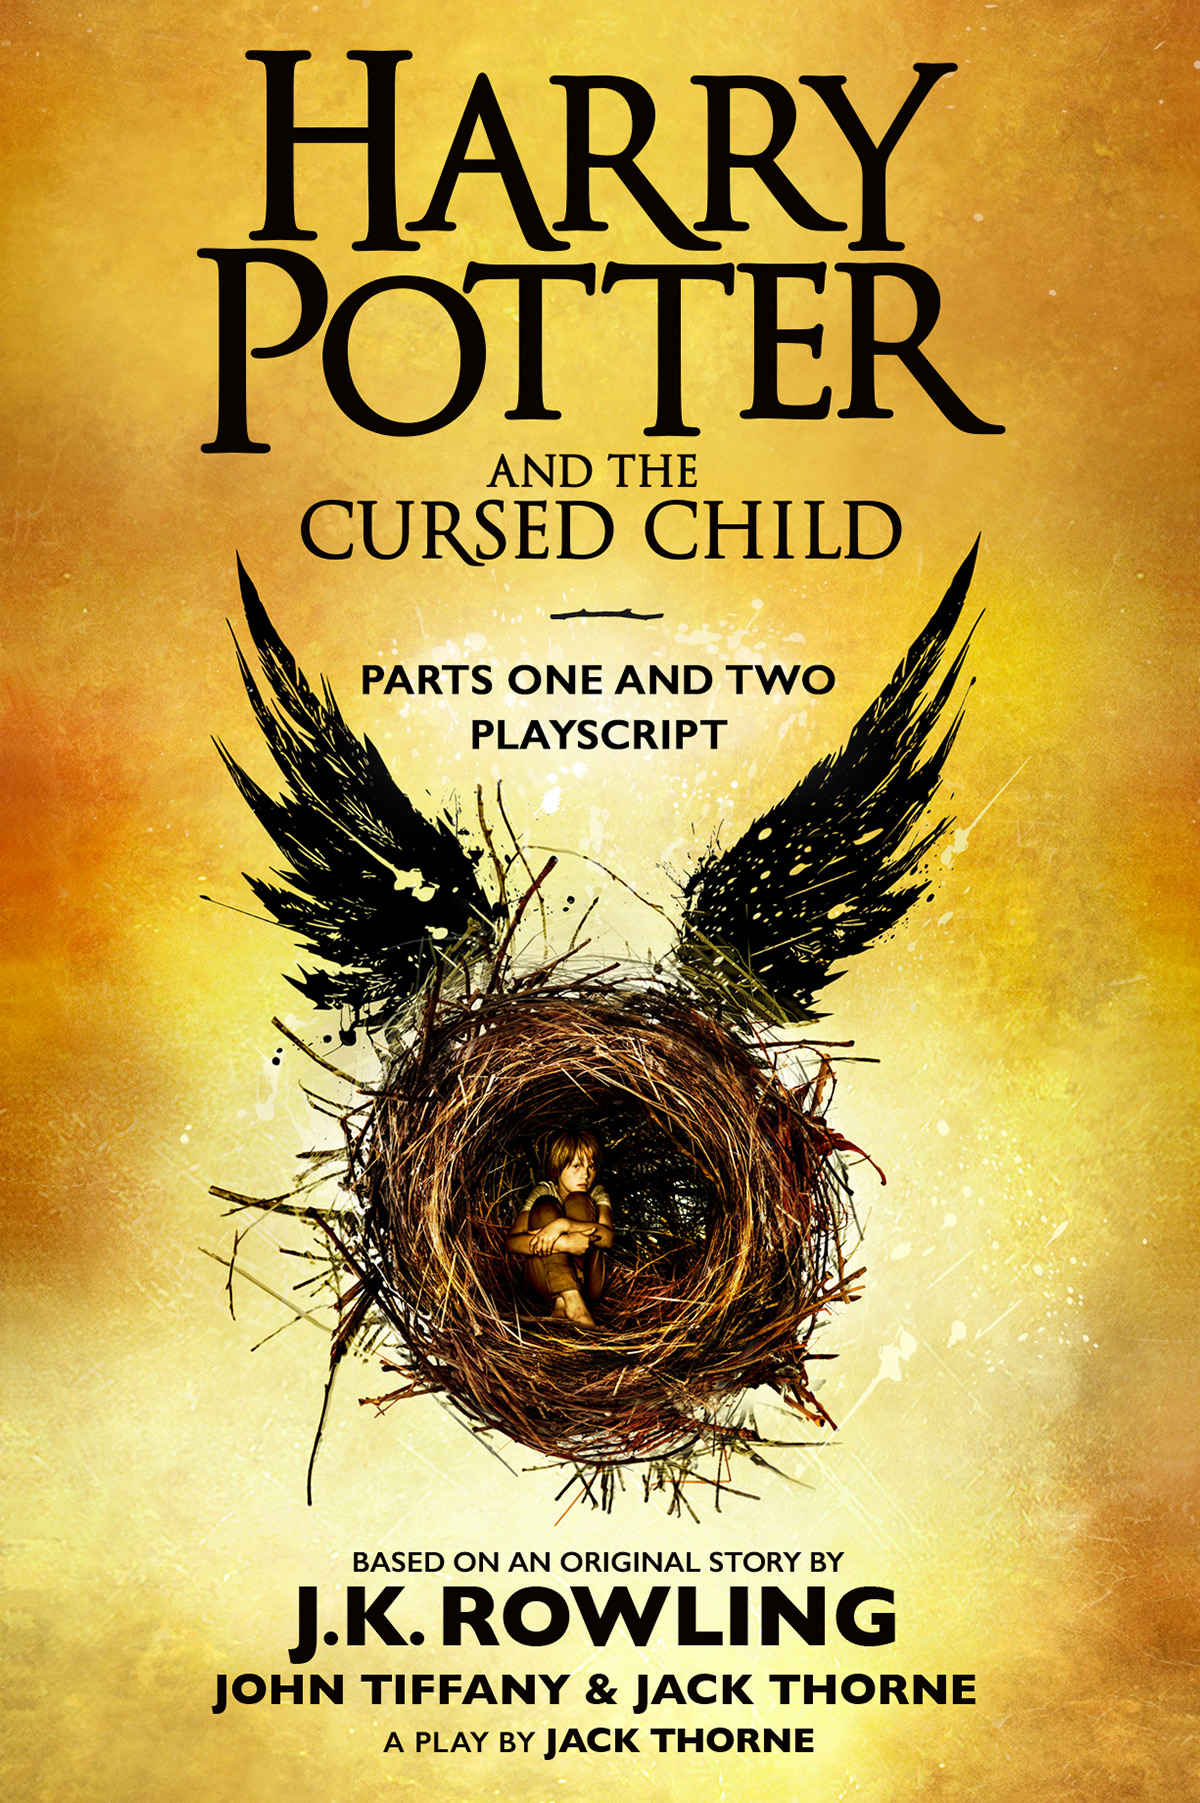 Harry Potter and the Cursed Child - Parts One and Two |